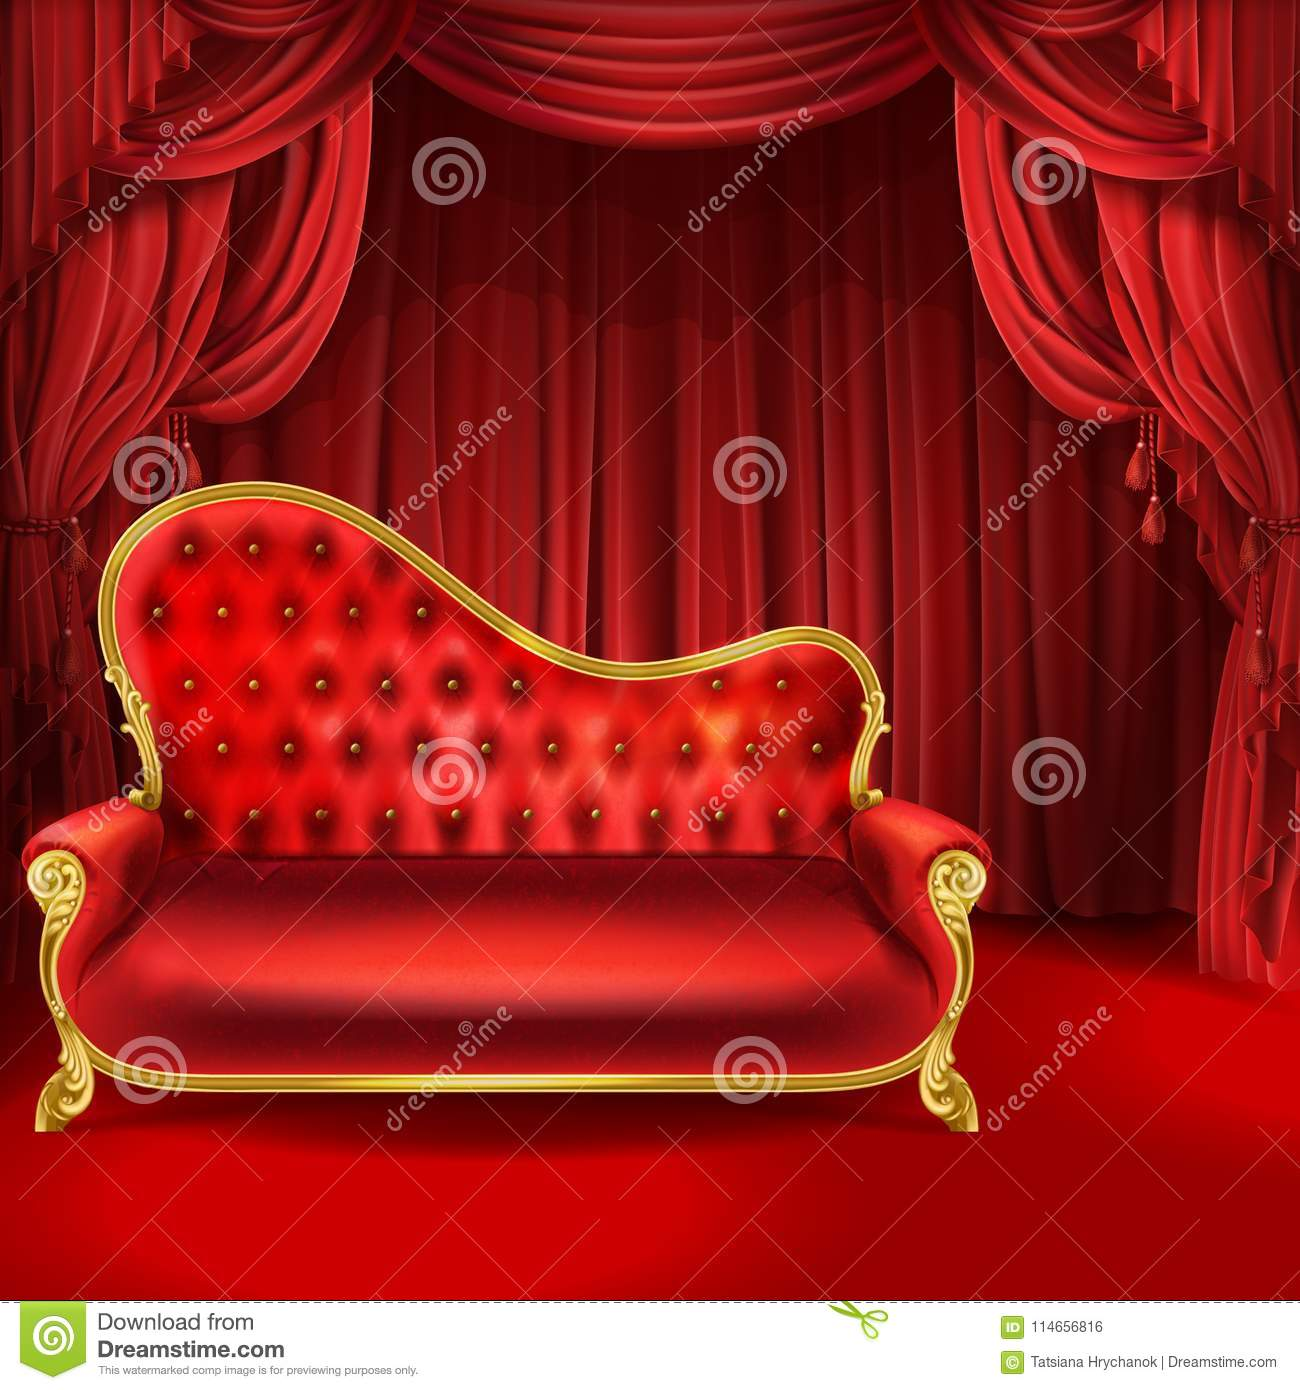 Theater vector concept, red sofa, scene curtains